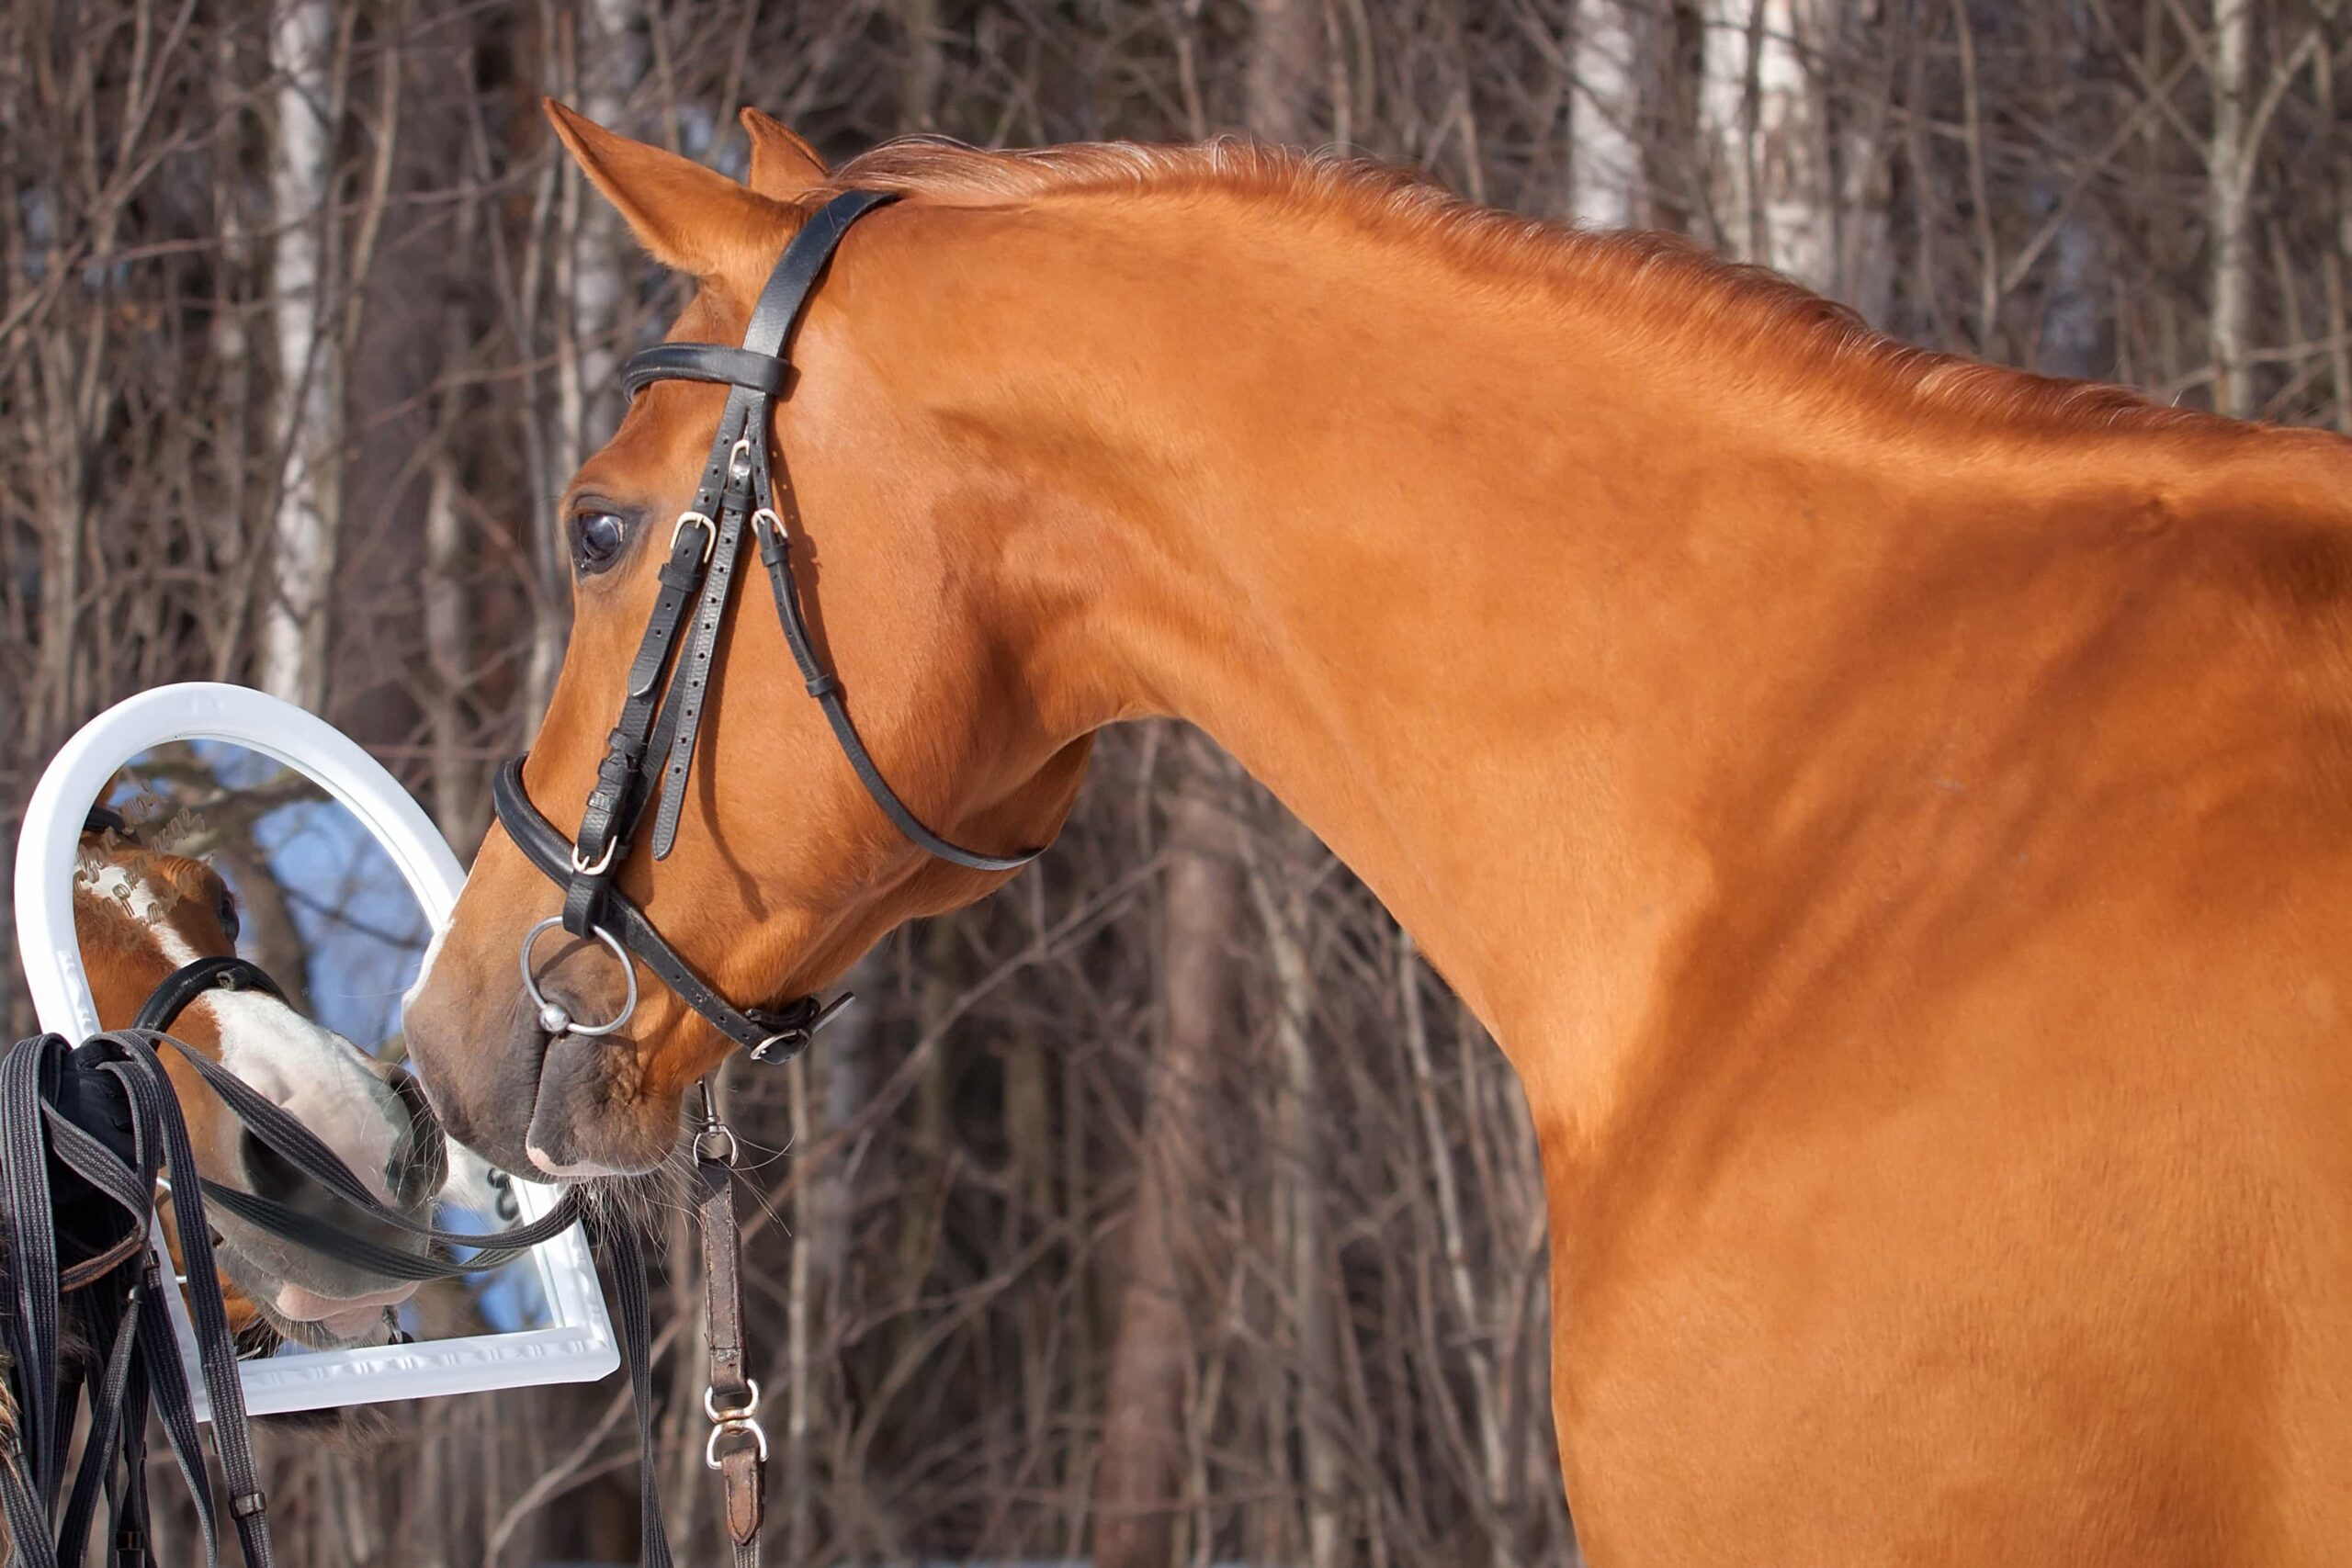 Why horses are so in tune with human emotion